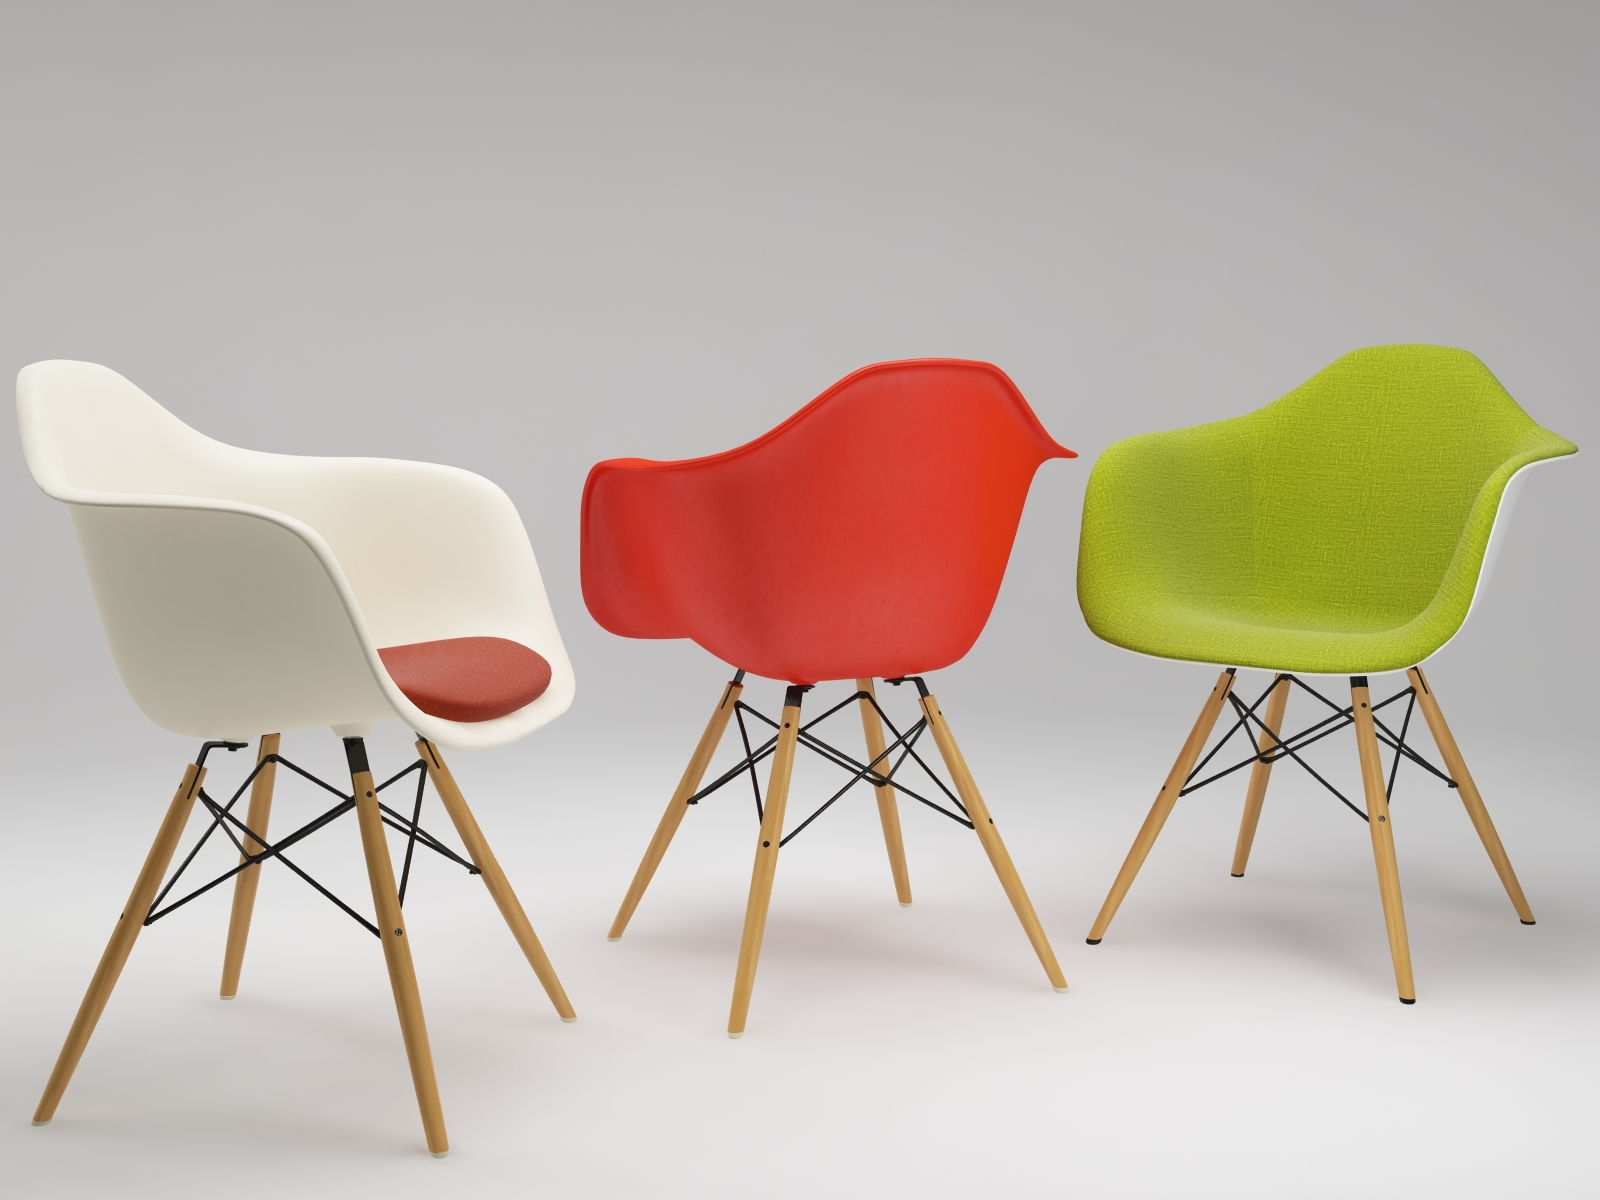 real Eames Chair DAW vray materials by ljunior